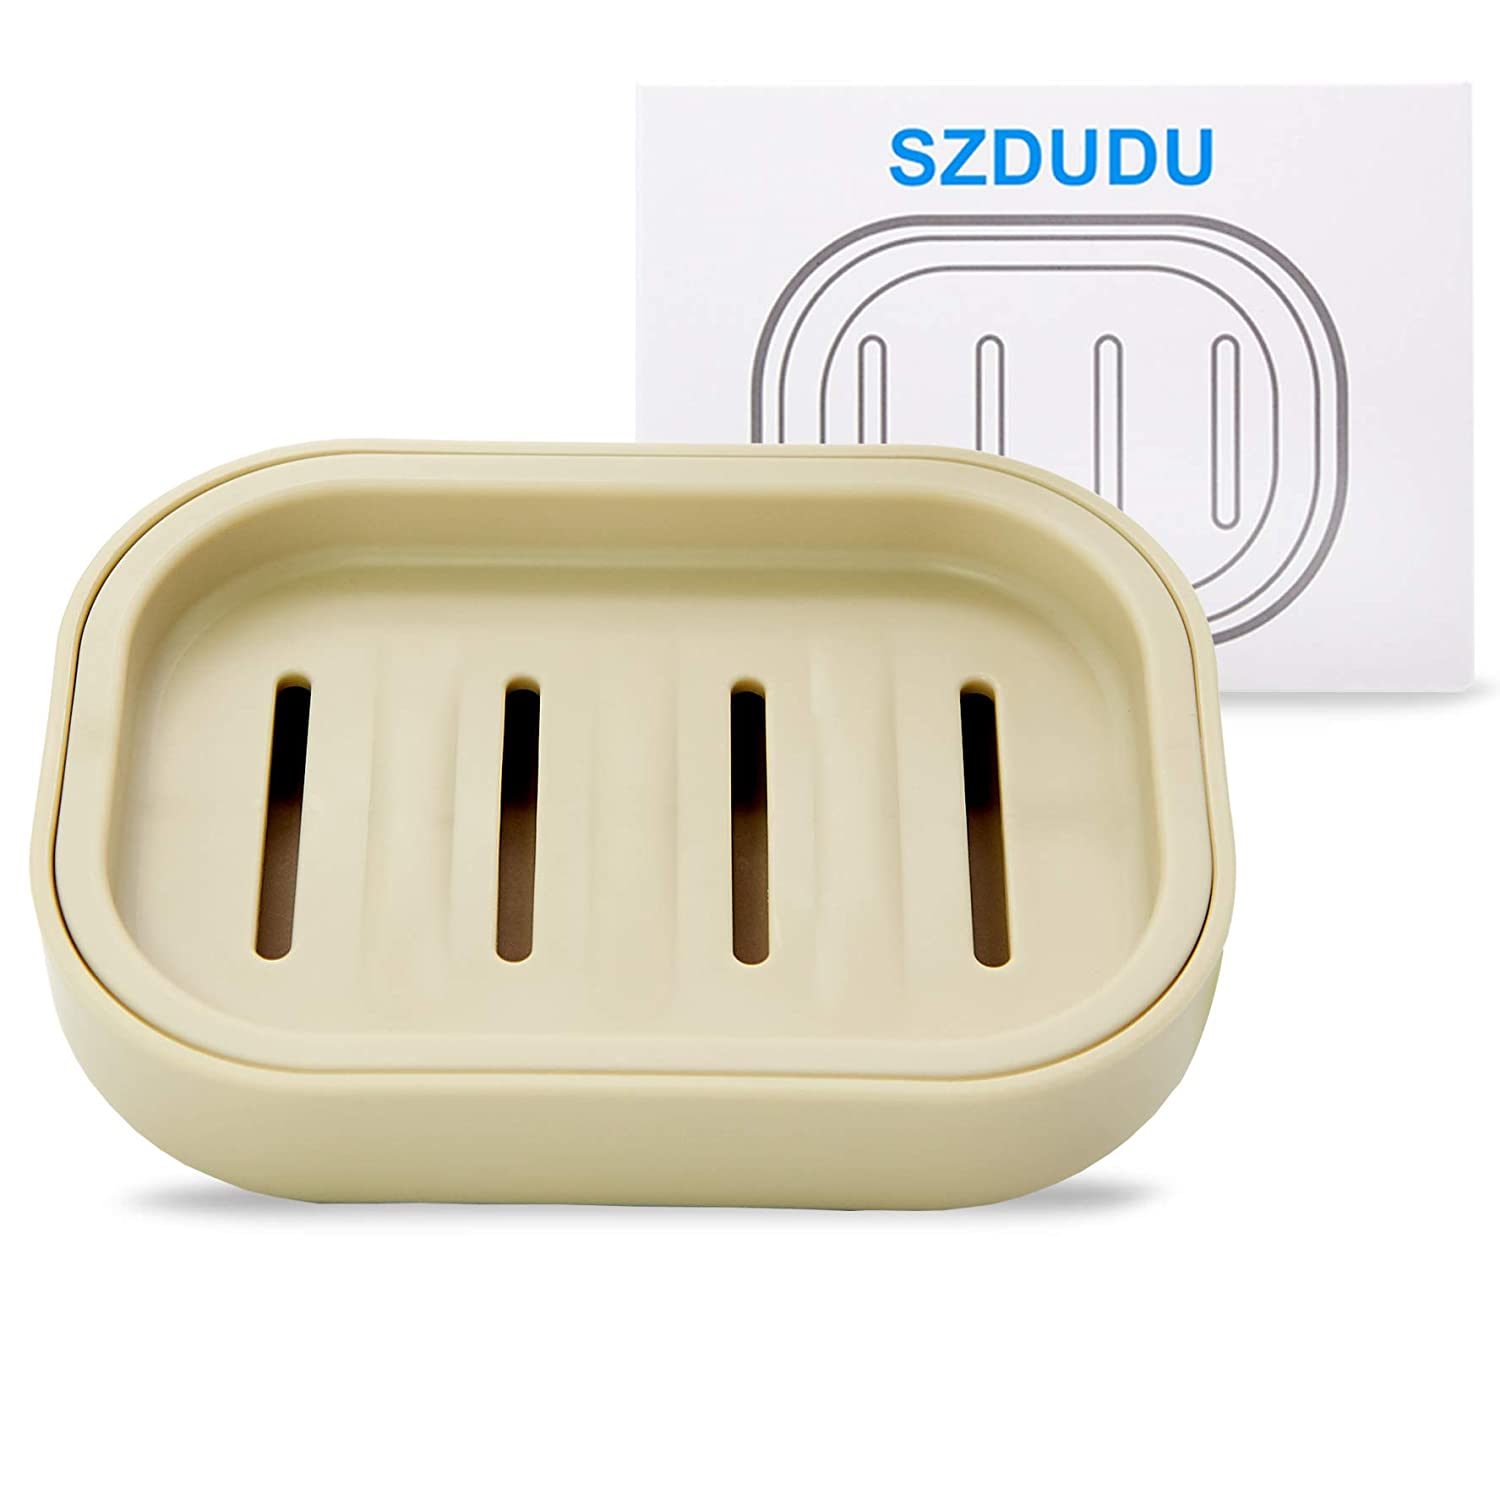 Soap Box,Soap Dish for bathroom, keep dry, easy to clean, drain, (Gray-blue)A worth having product zhong lan ruan ying